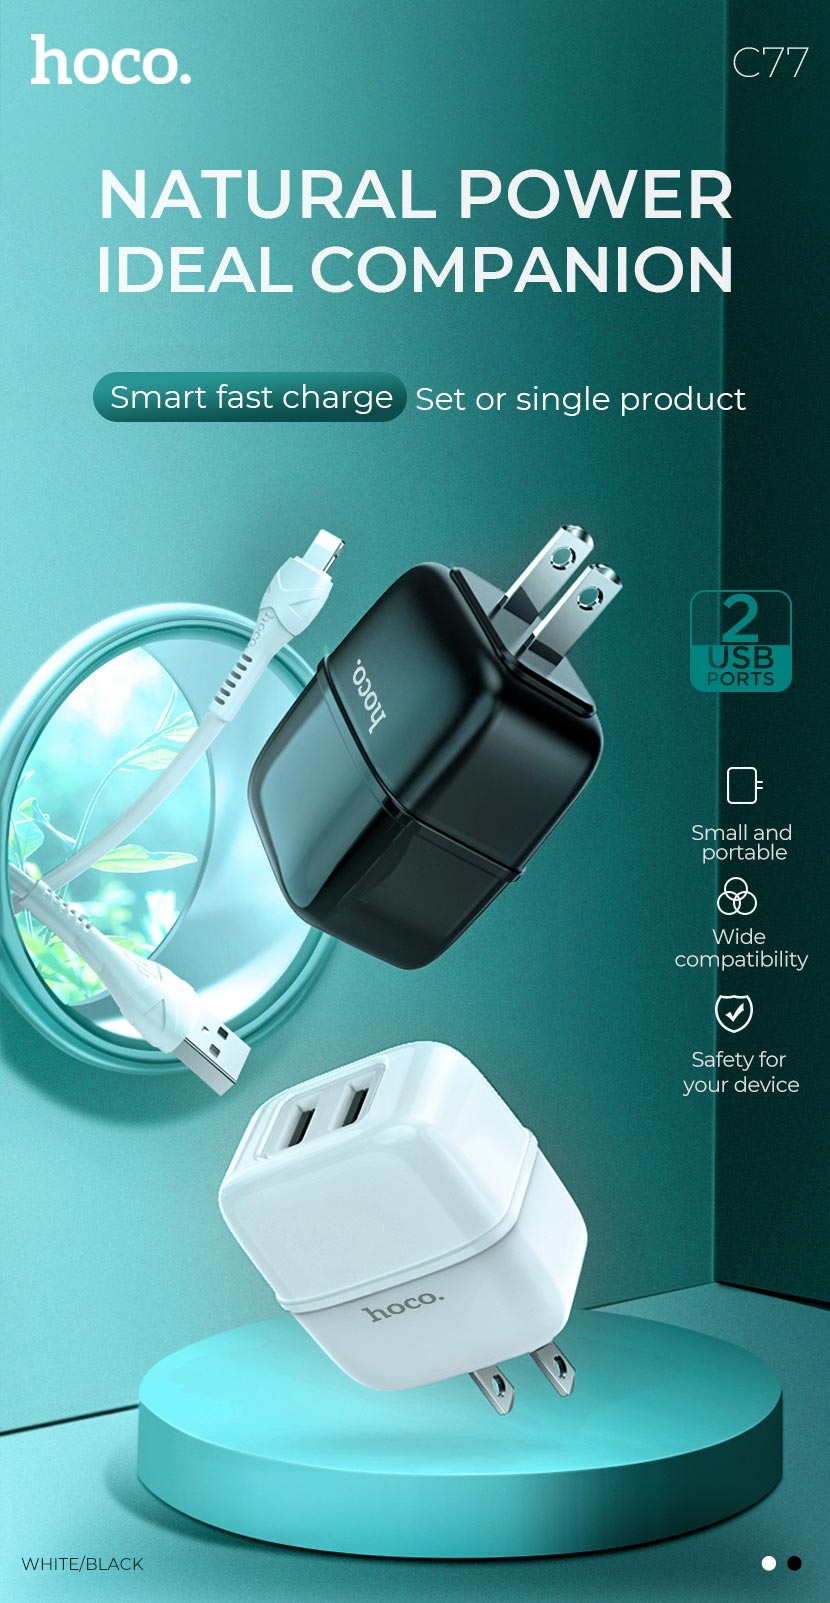 hoco news c77 highway dual port charger power en